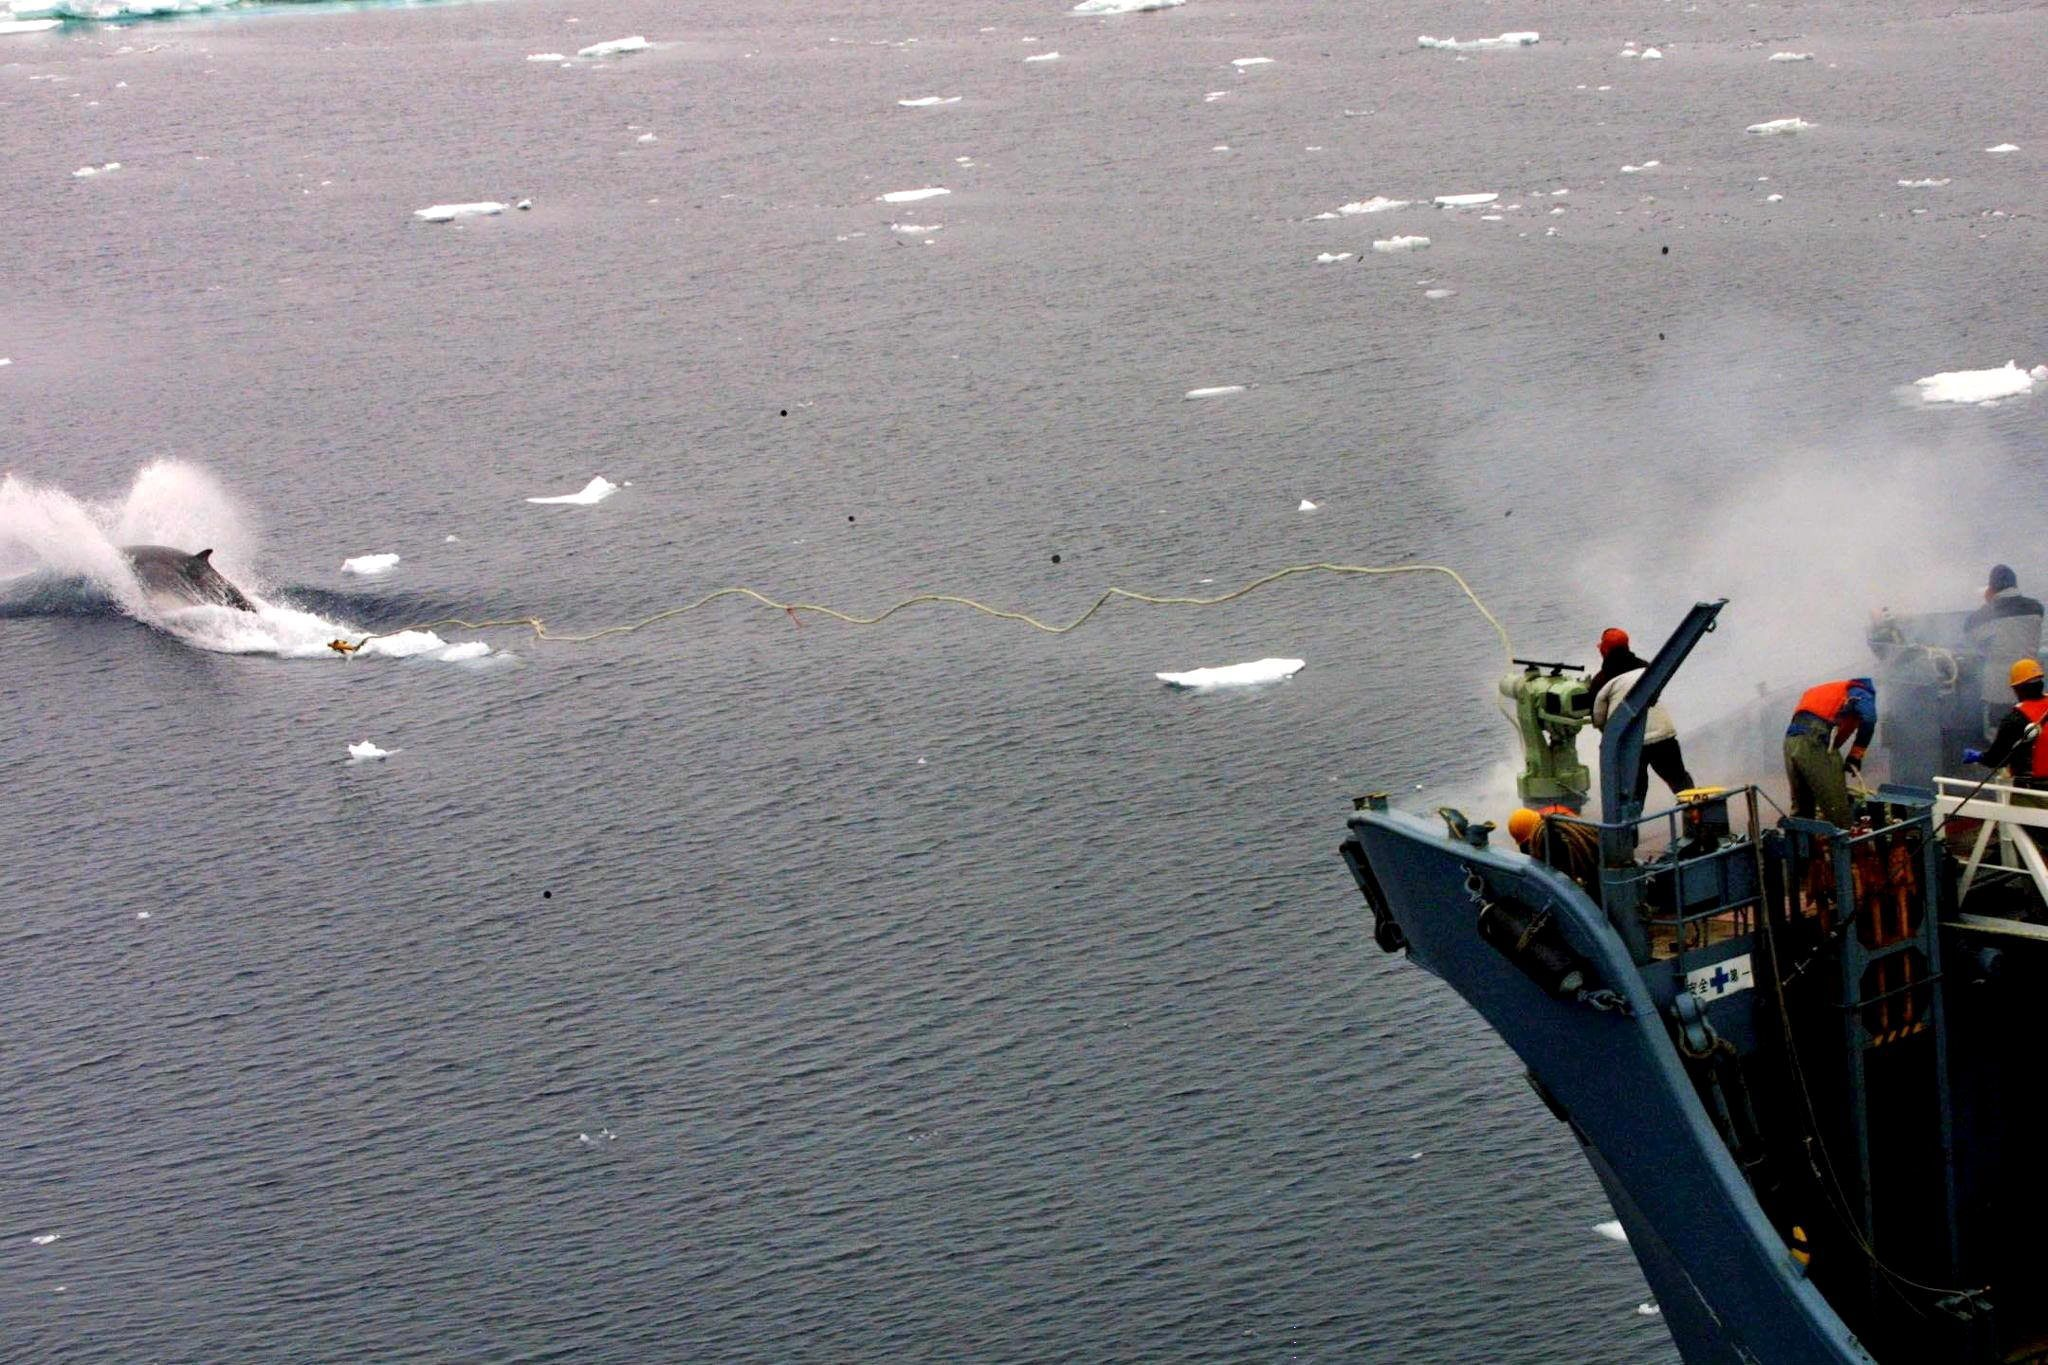 A Japanese whale catcher ship using a harpoon to catch a whale at sea in the Southern Ocean. According to reports, a Japanese whaling fleet departed on 01 December 2015 to resume its whaling programme in the Southern Ocean despite the International Court of Justice (ICJ) rule in 2014 said Japan's scientific whaling program was a sham. Picture: EPA)